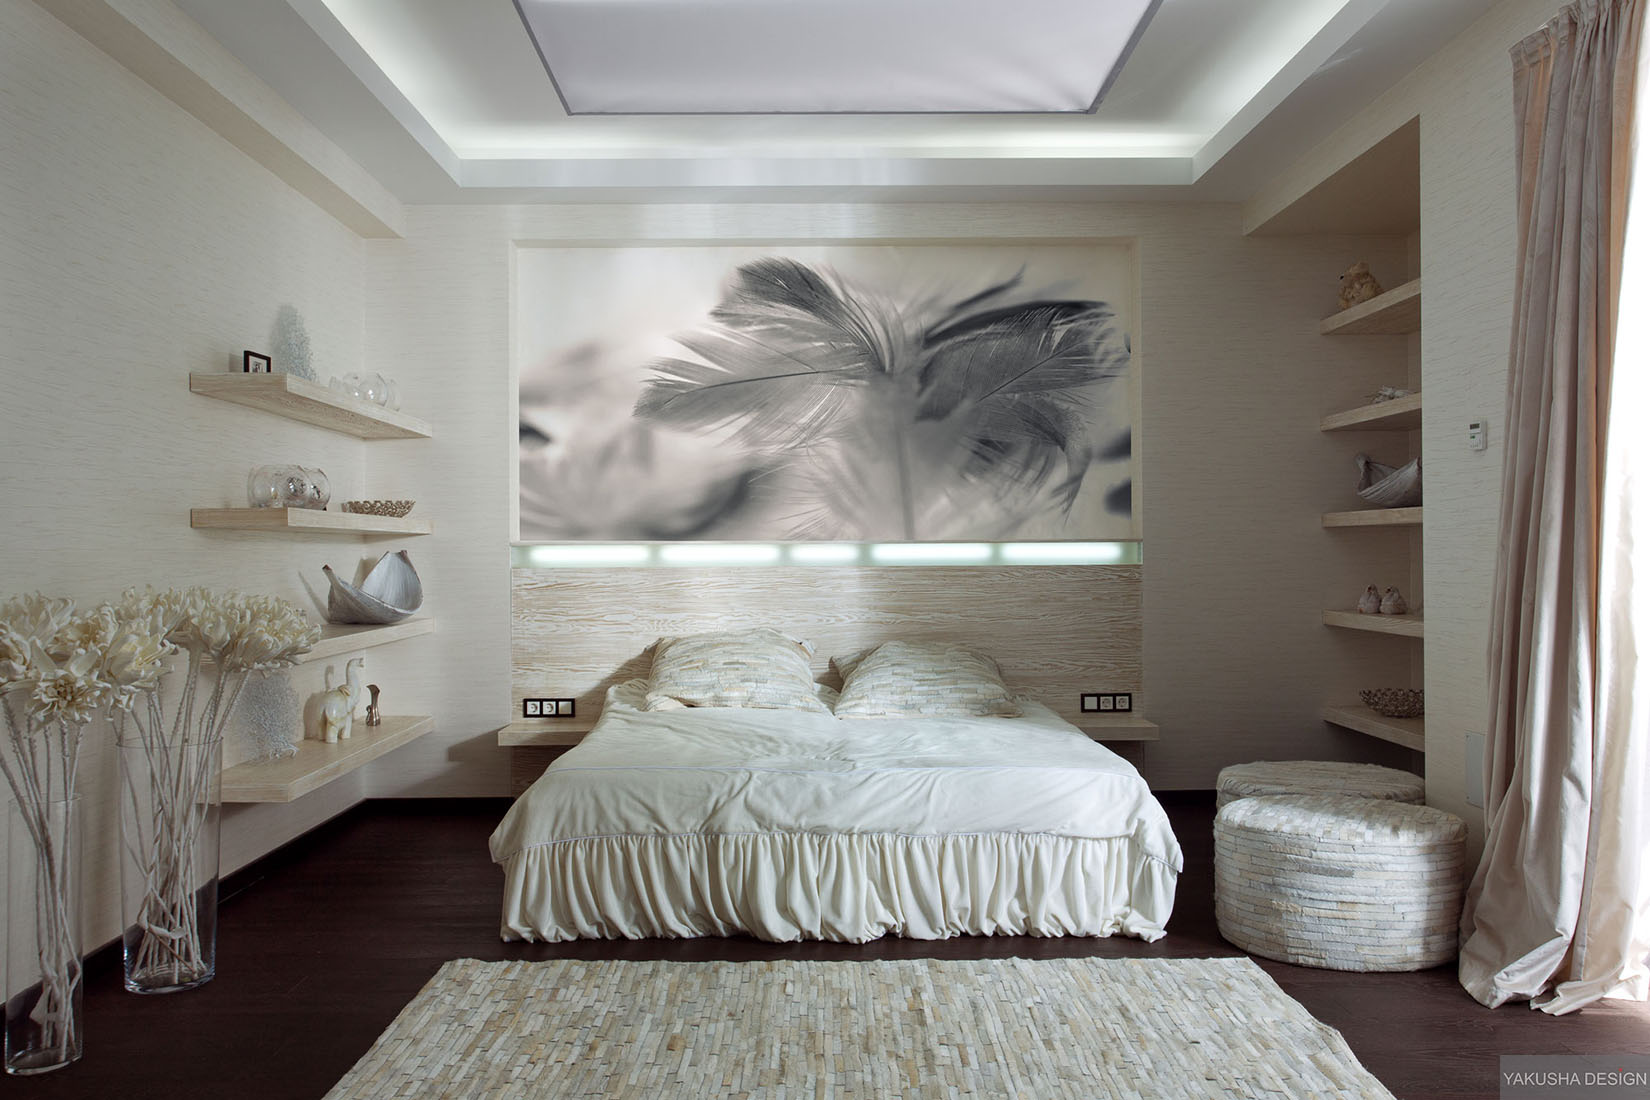 Textured White Bedroom With Collectables Displayed On Shelving With Feather Print And Textured Ruginterior Design Ideas